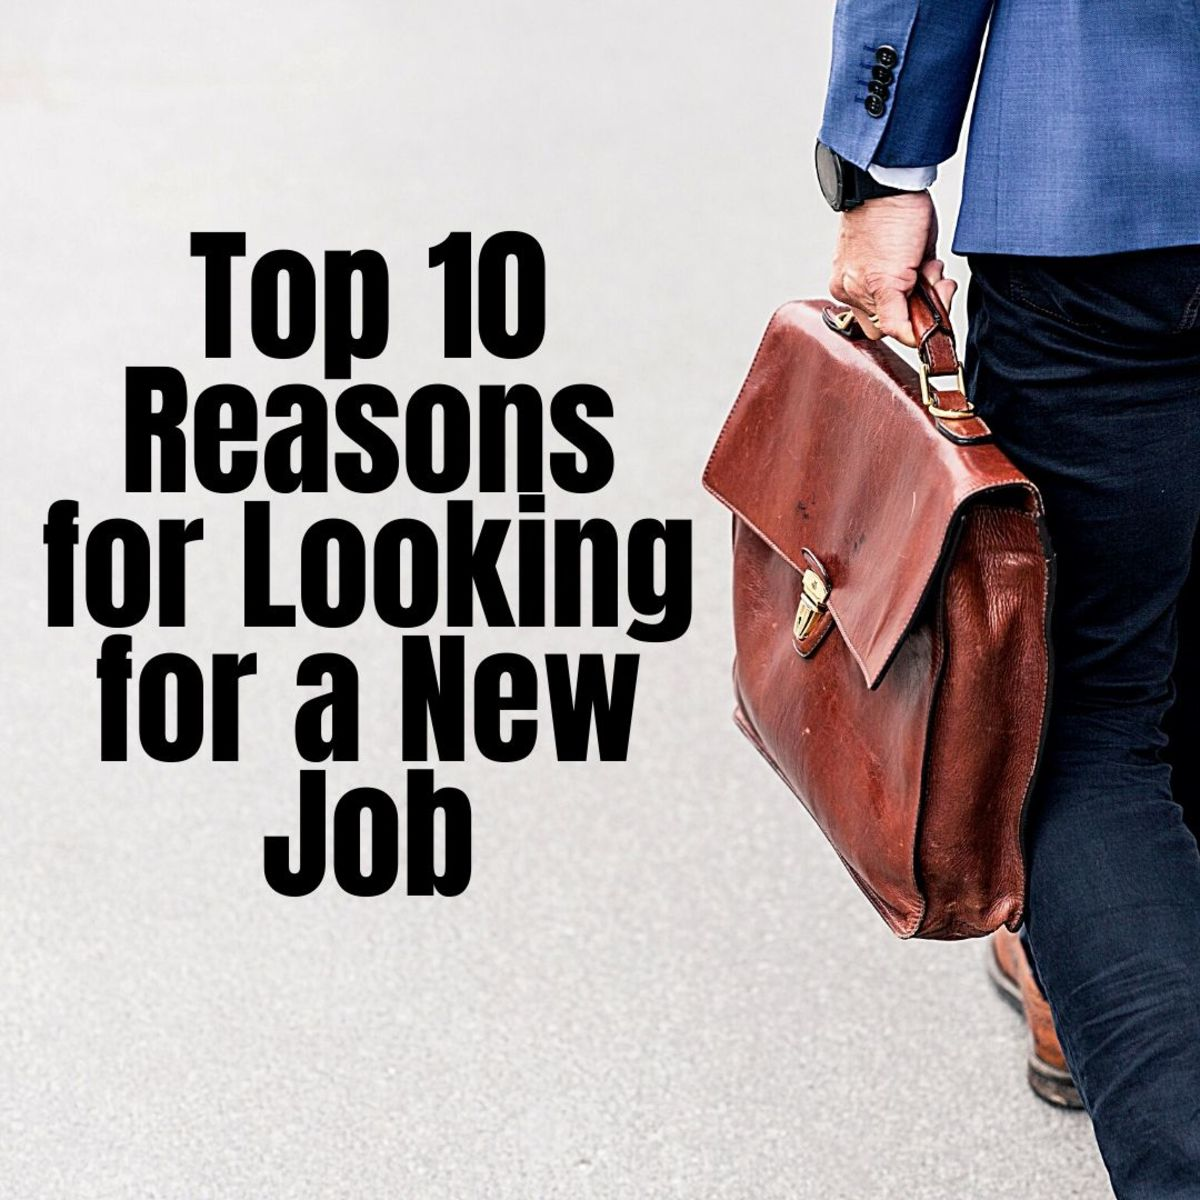 Here are 10 reasons to explain to your potential new employers why you're looking for a different job.